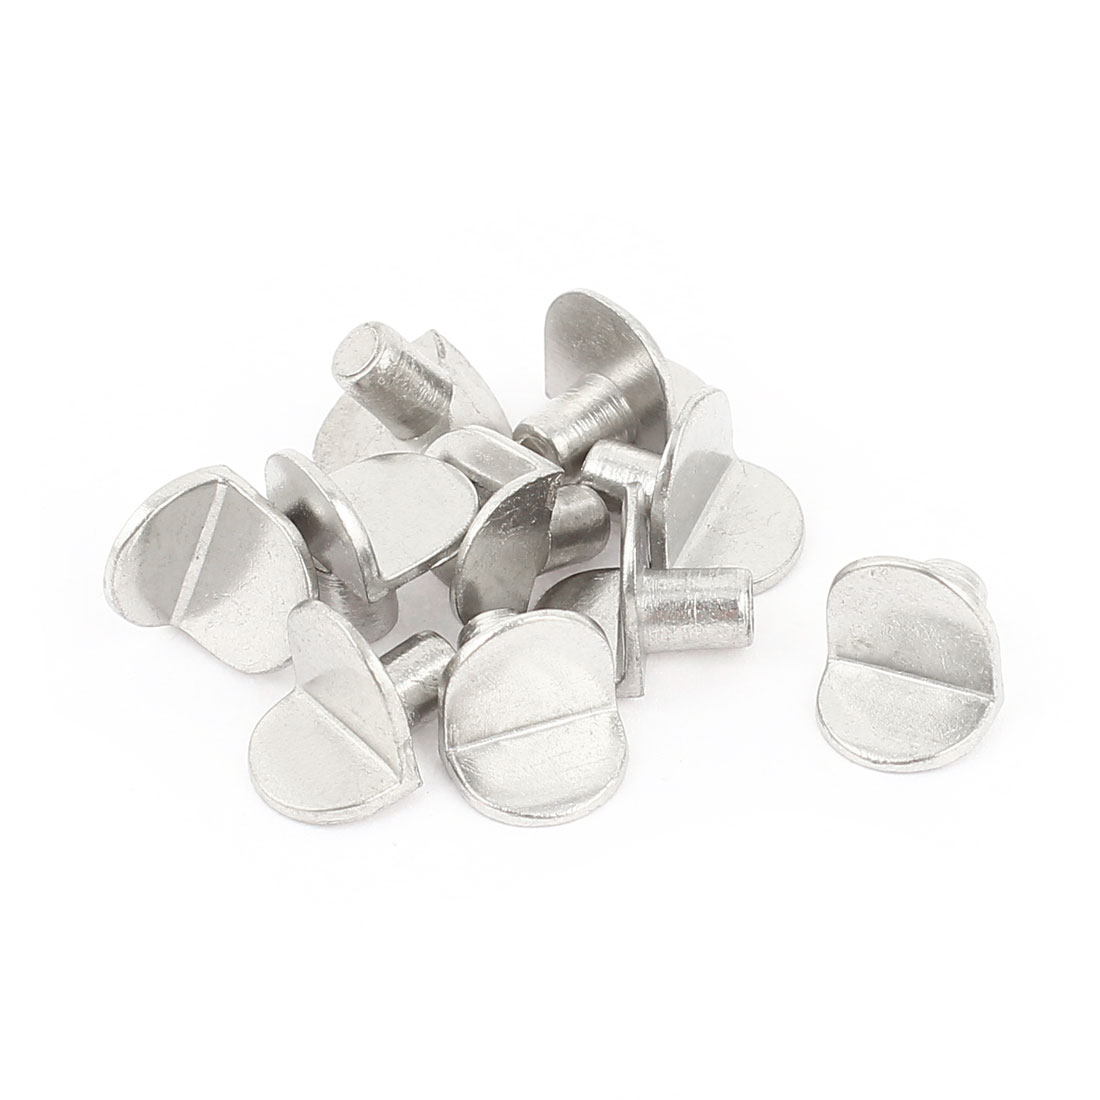 10 Pcs L Design Glass Shelf Holder Support Peg Pin 5mm Diameter